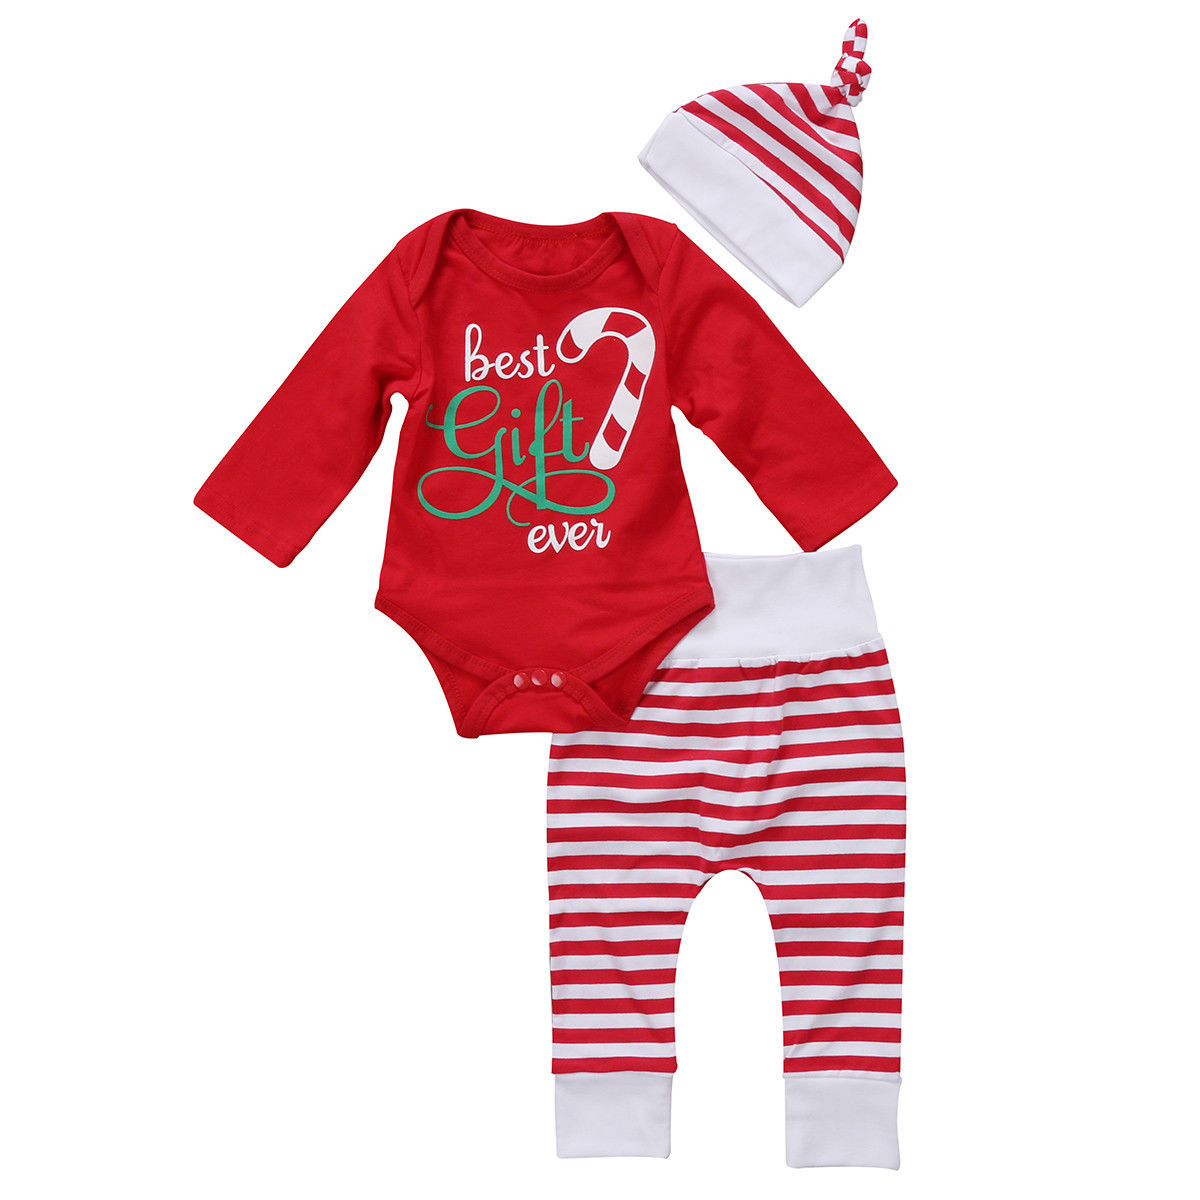 2017 Brand New 3PCS Set Newborn Toddler Infant Baby Girl Boy Clothes Romper Long Sleeve Shirt Tops Pants Hat Santa Candy Outfits 0 24m newborn infant baby boy girl clothes set romper bodysuit tops rainbow long pants hat 3pcs toddler winter fall outfits